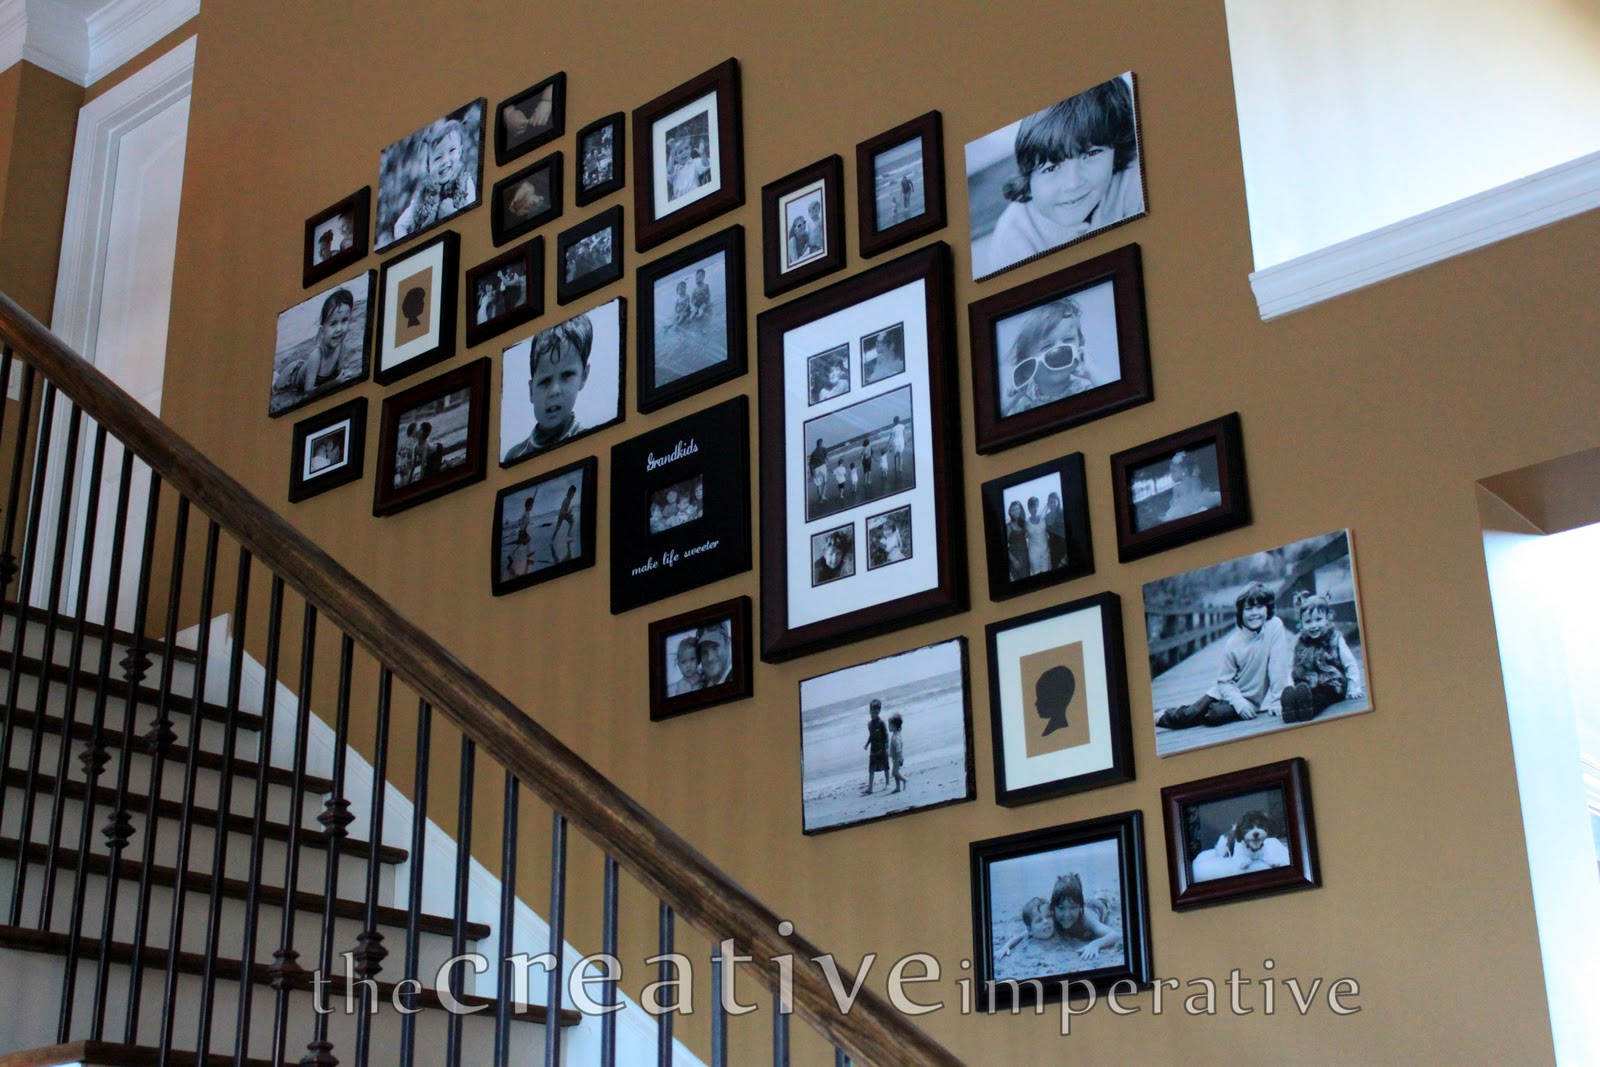 The creative imperative stairway gallery wall - Stairway photo gallery ideas ...